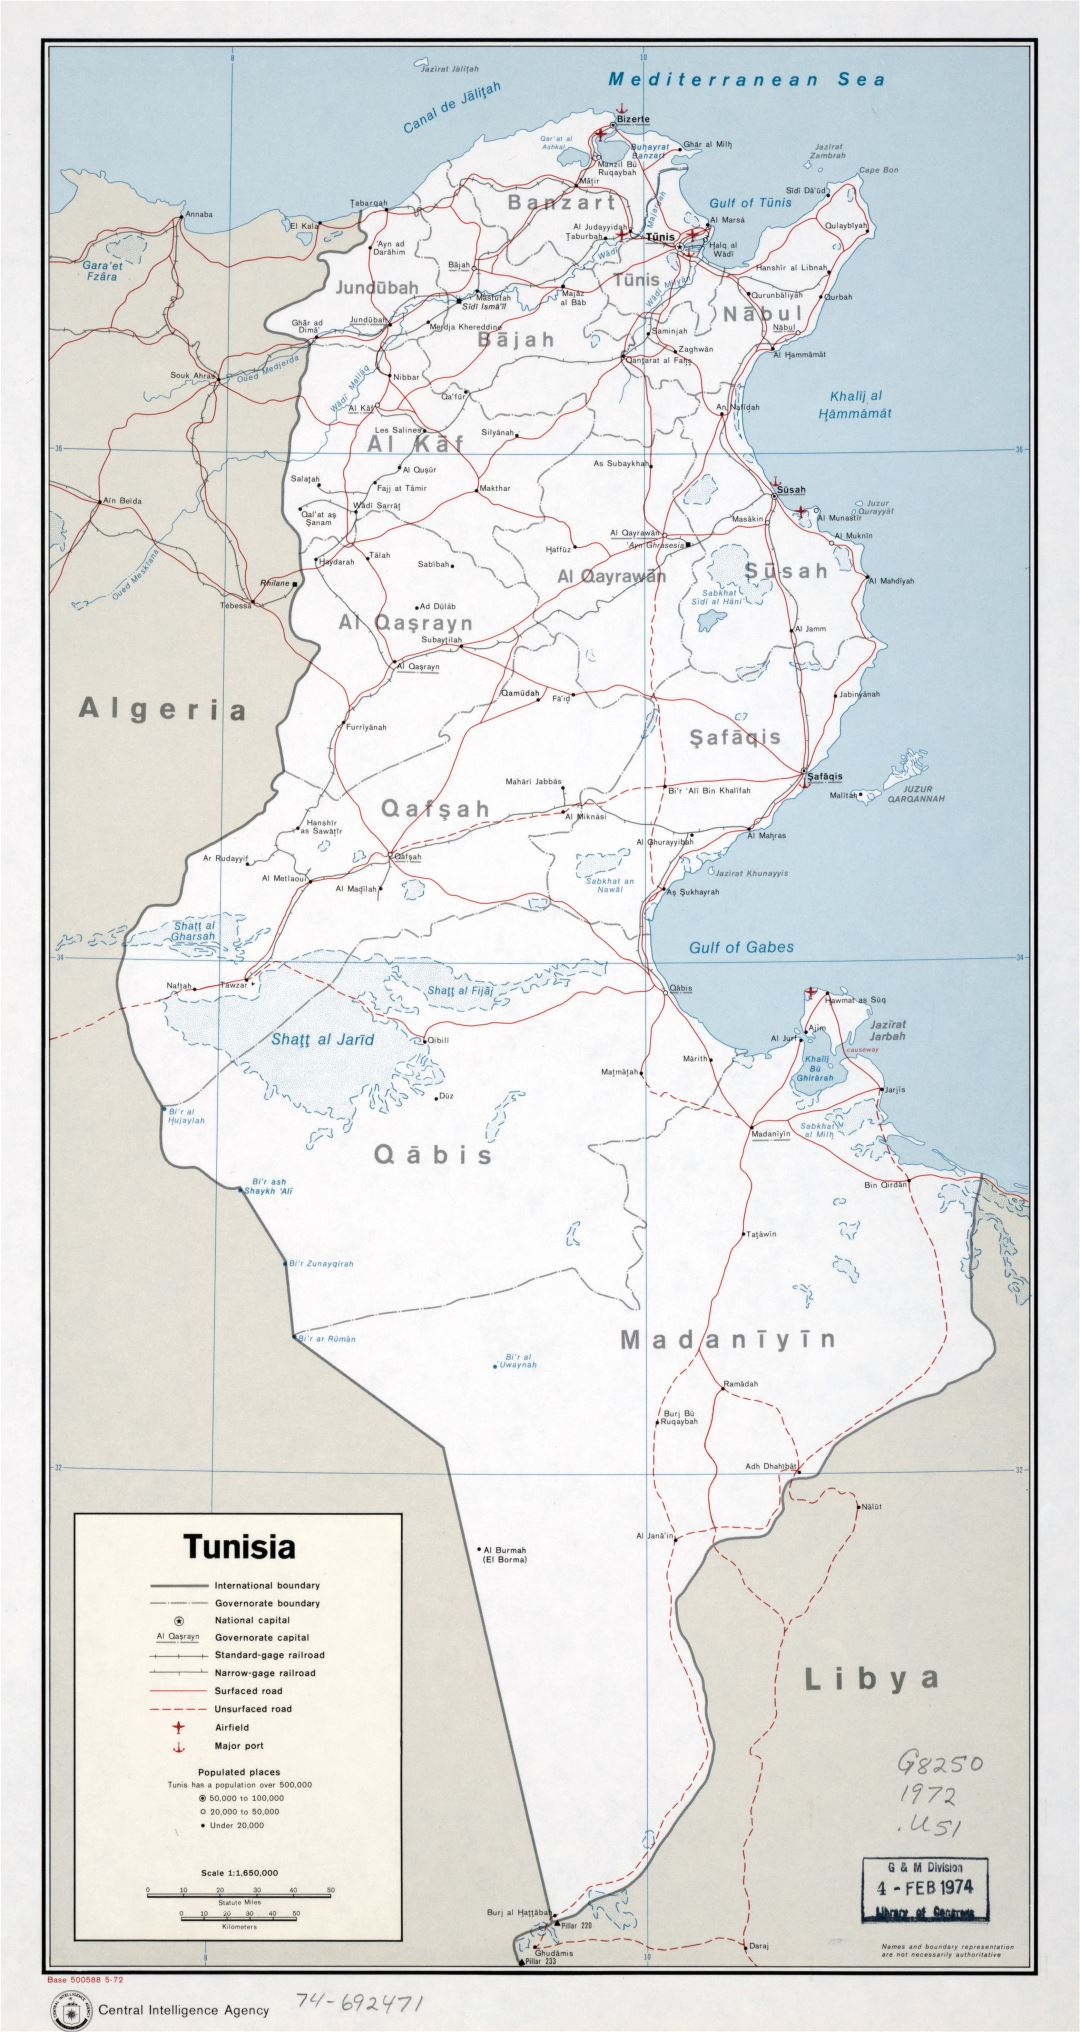 Large scale political and administrative map of Tunisia with roads, railroads, major cities, ports and airports - 1972